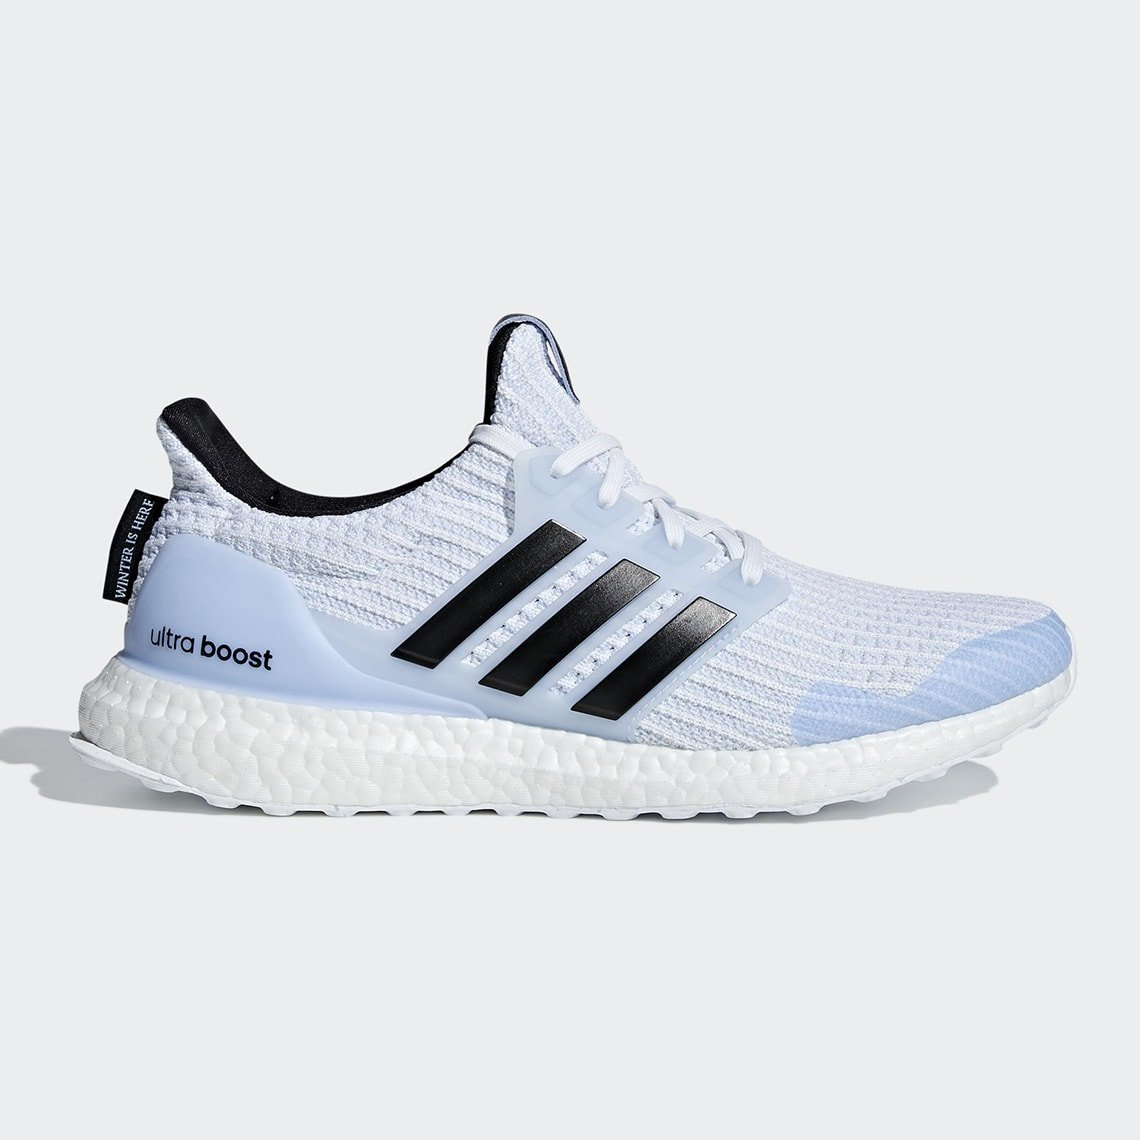 adidas-ultra-boost-game-of-thrones-white-walkers-EE3708